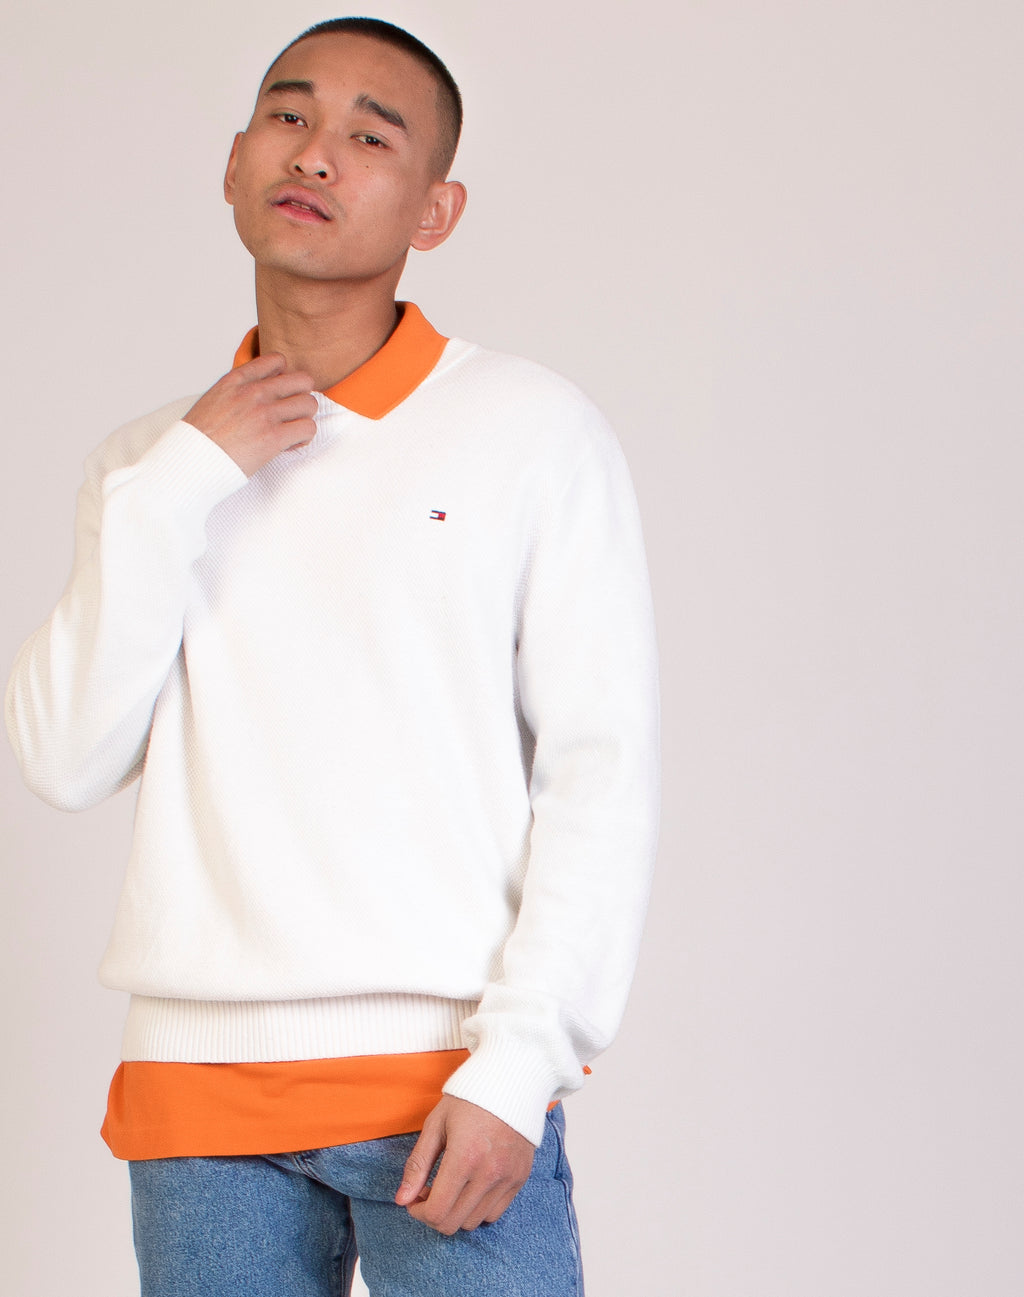 TOMMY HILFIGER WHITE KNITTED JUMPER